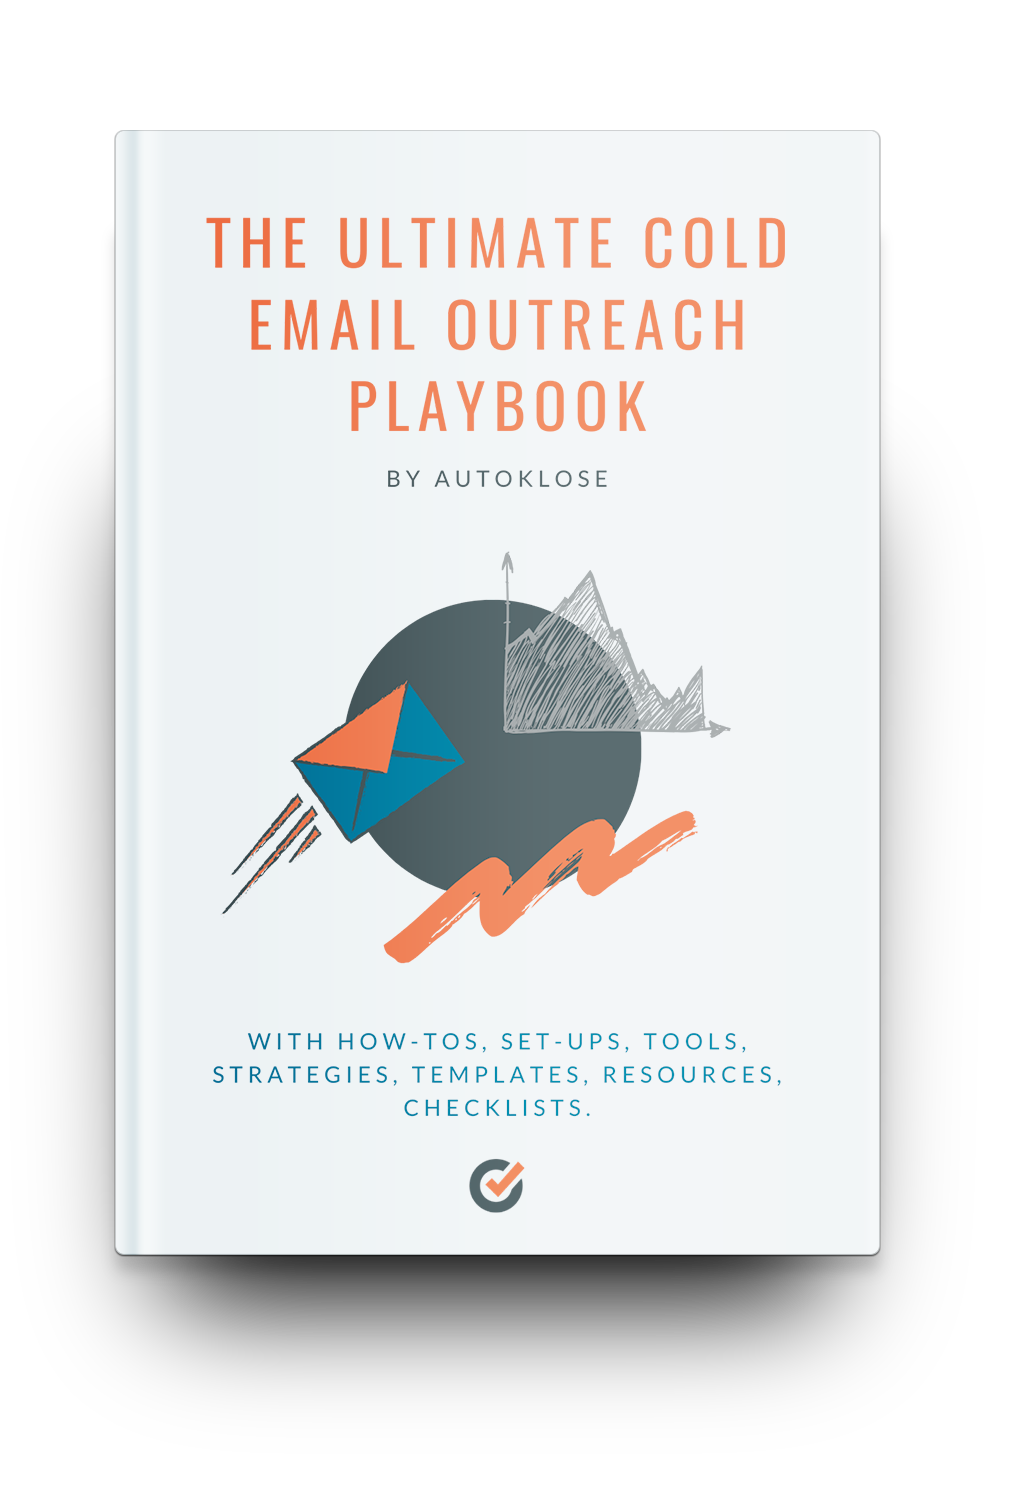 The Ultimate Cold Email Outreach Playbook Download